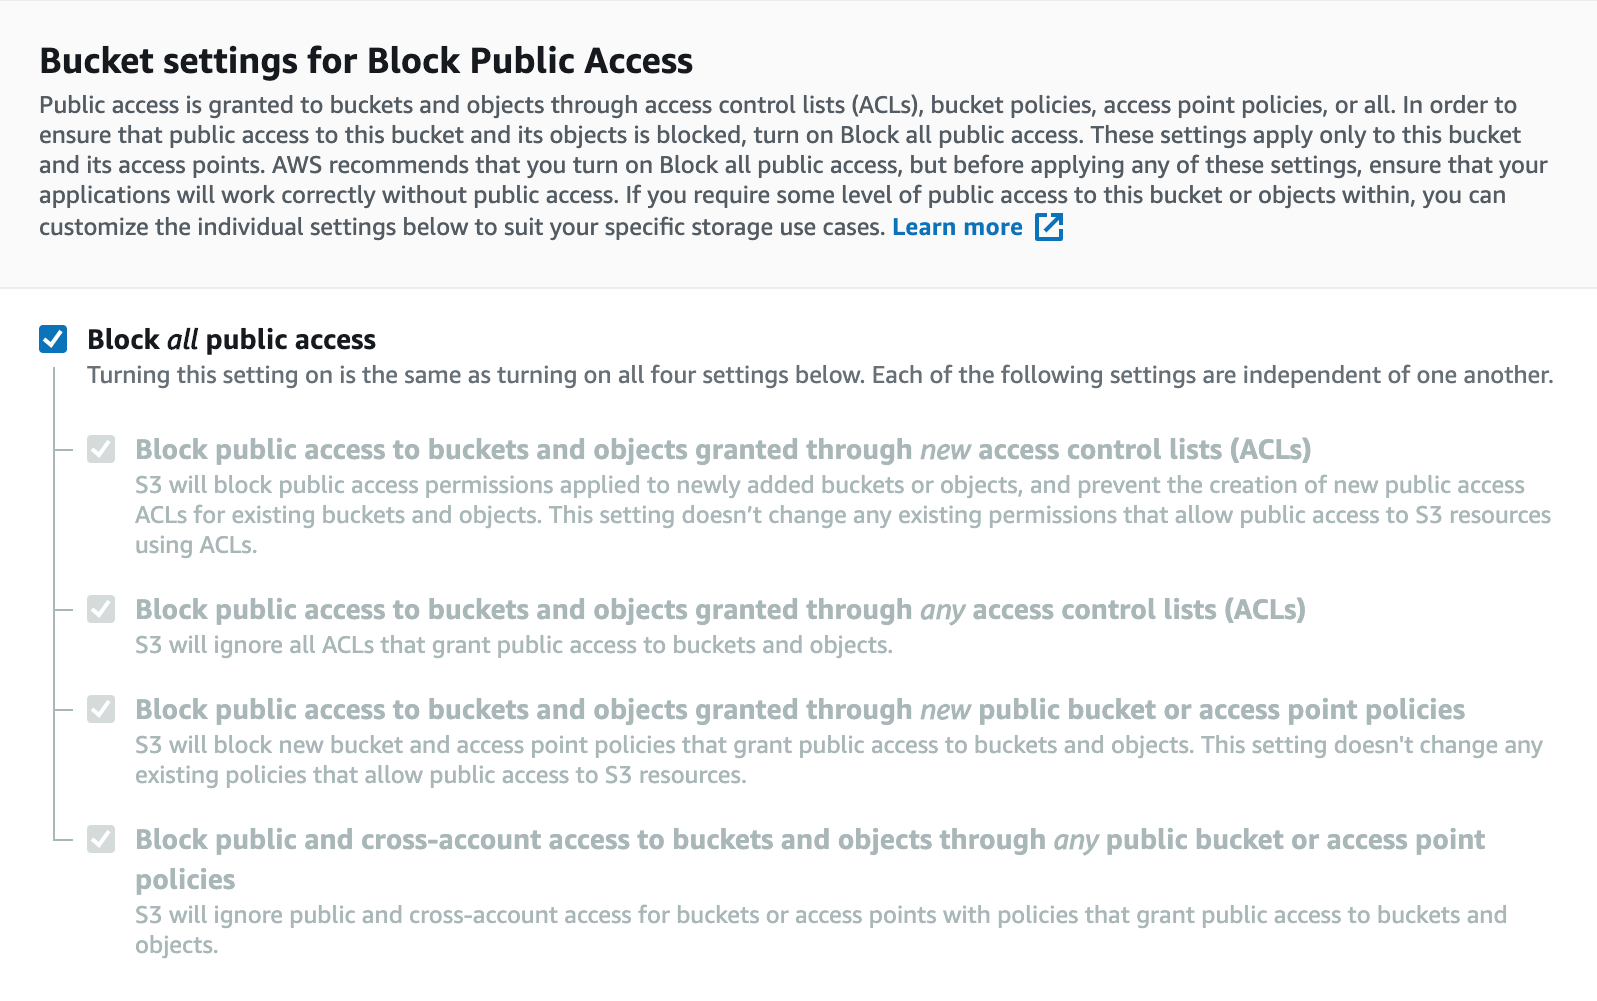 Bucket settings for public access